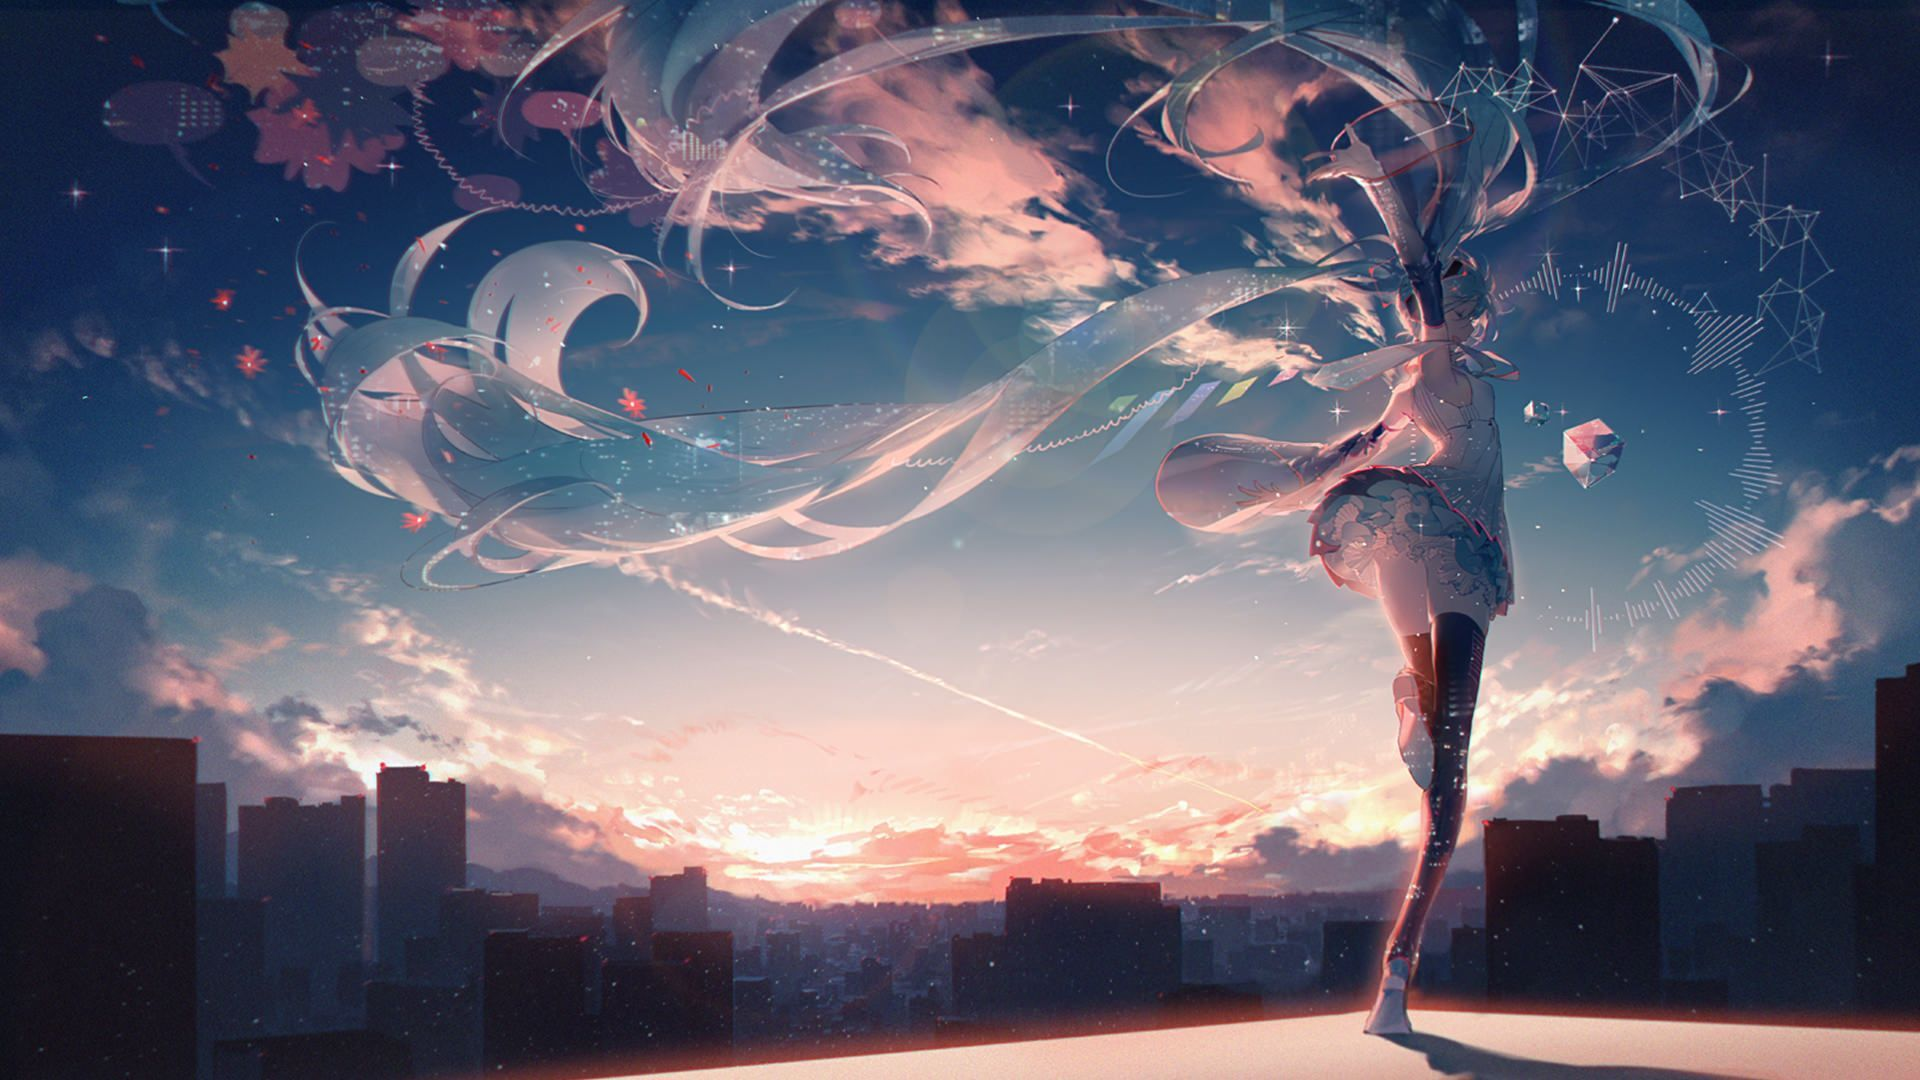 Aesthetic Anime 1920 Wallpapers - Wallpaper Cave